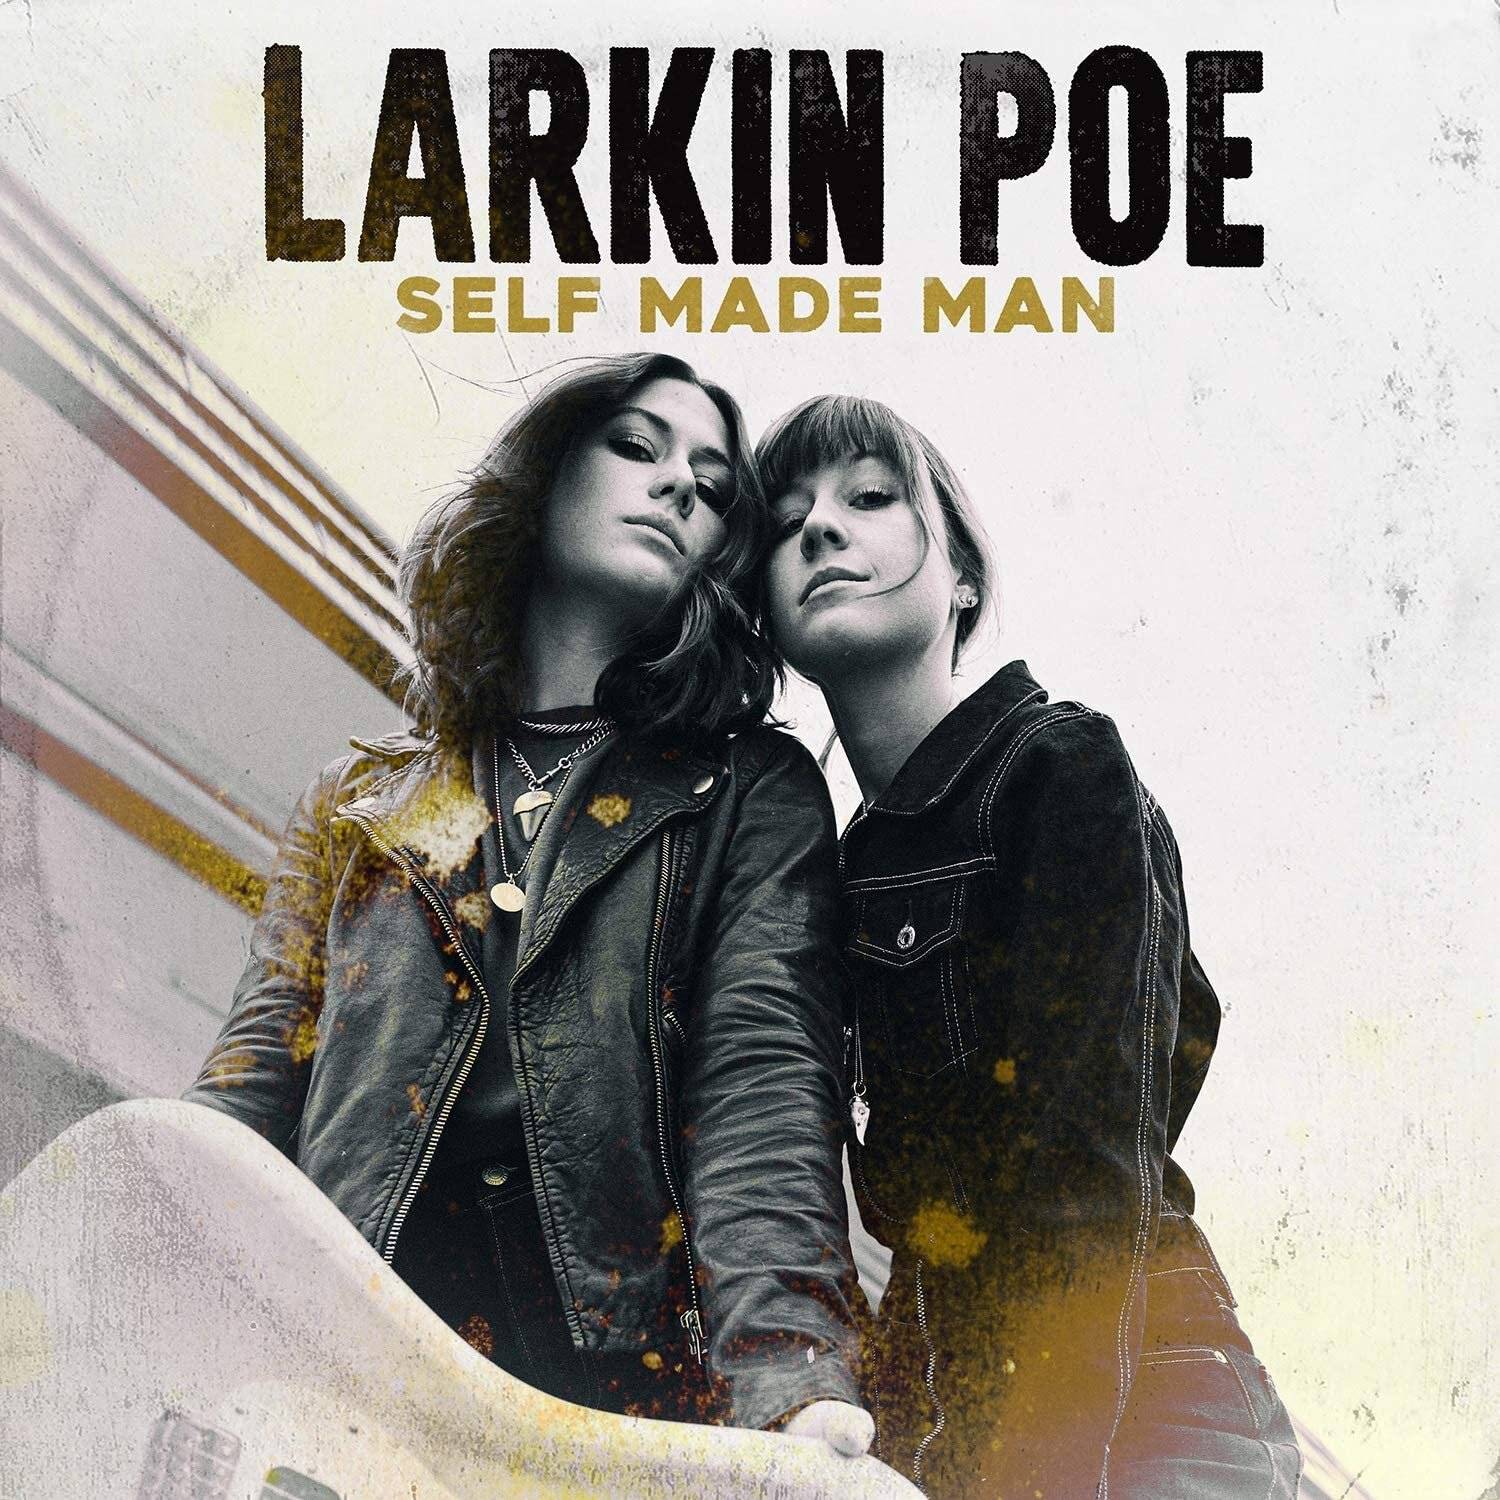 larkin_poe_self_made_man.jpg